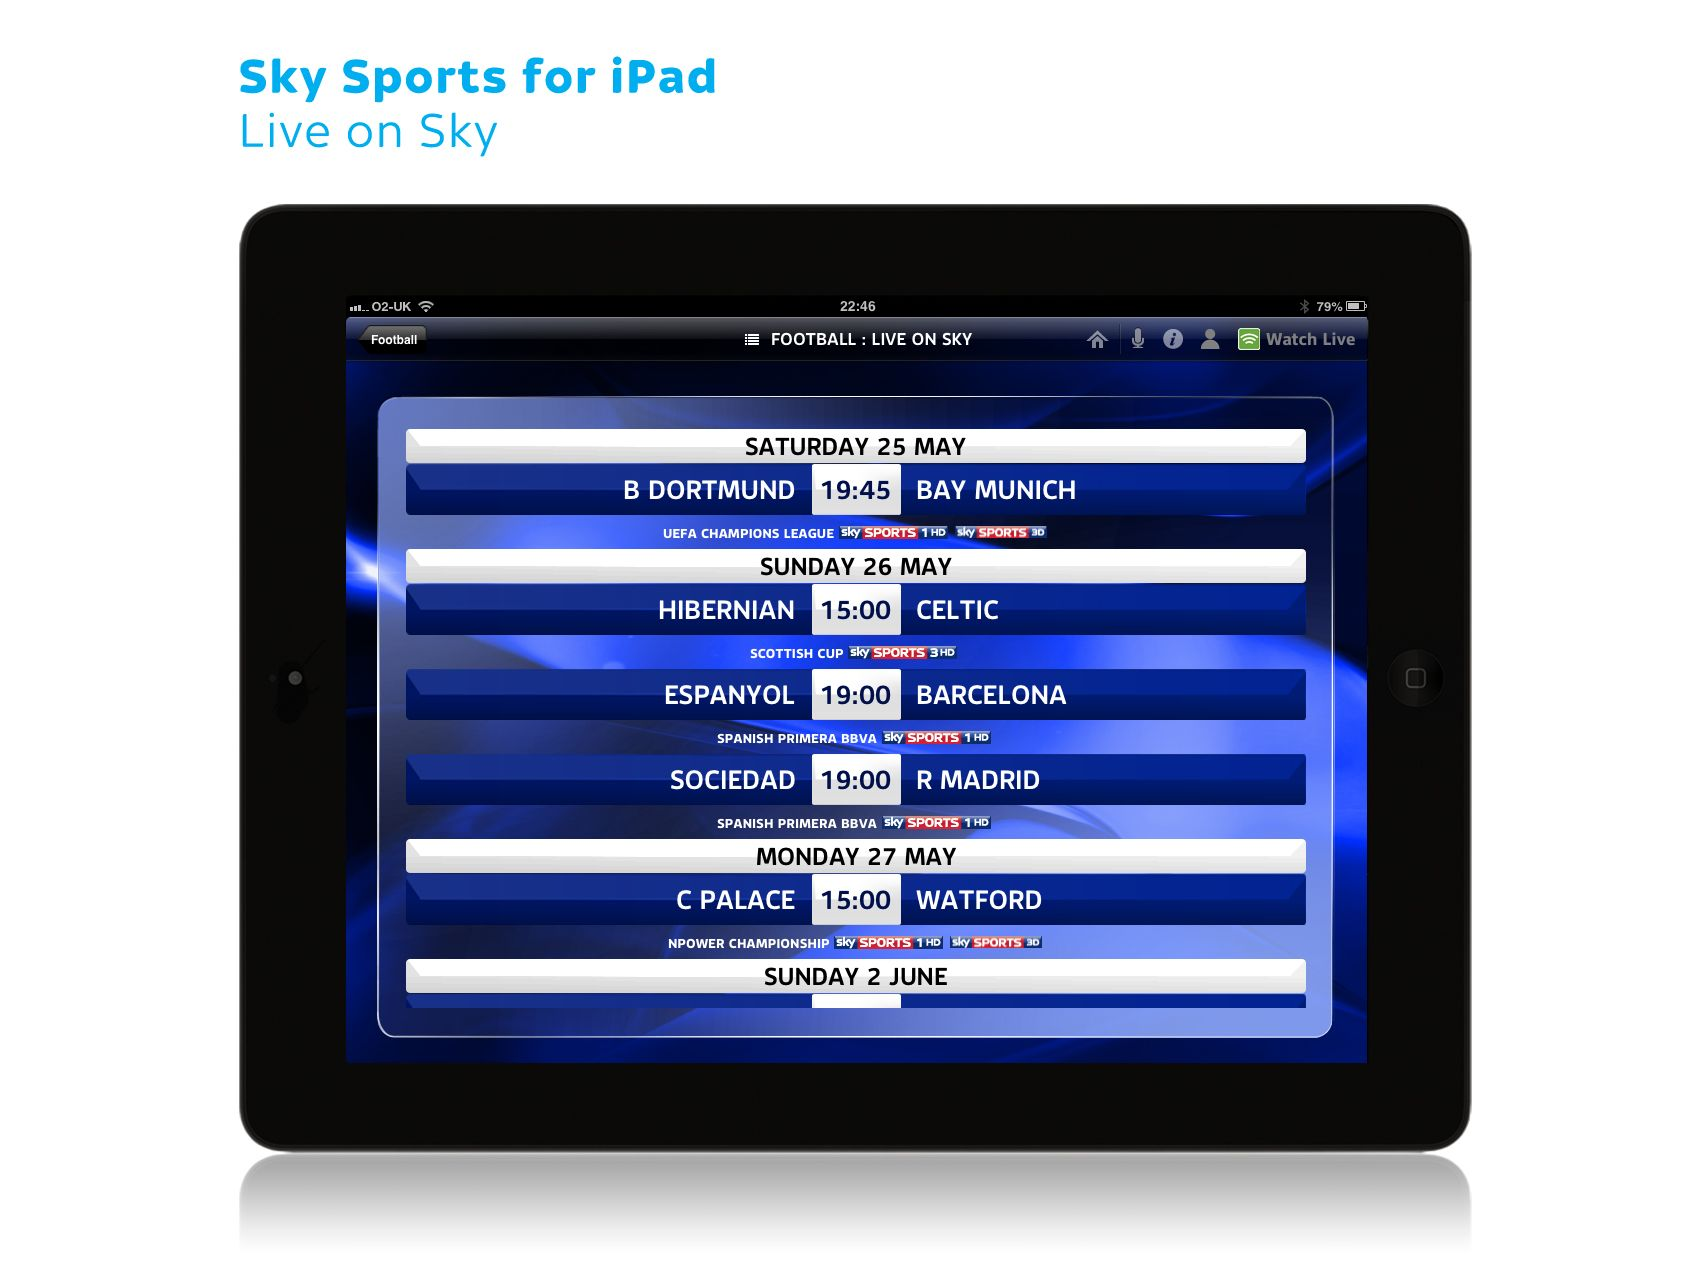 Sky Sports for iPad Live on Sky Sky football, Dortmund